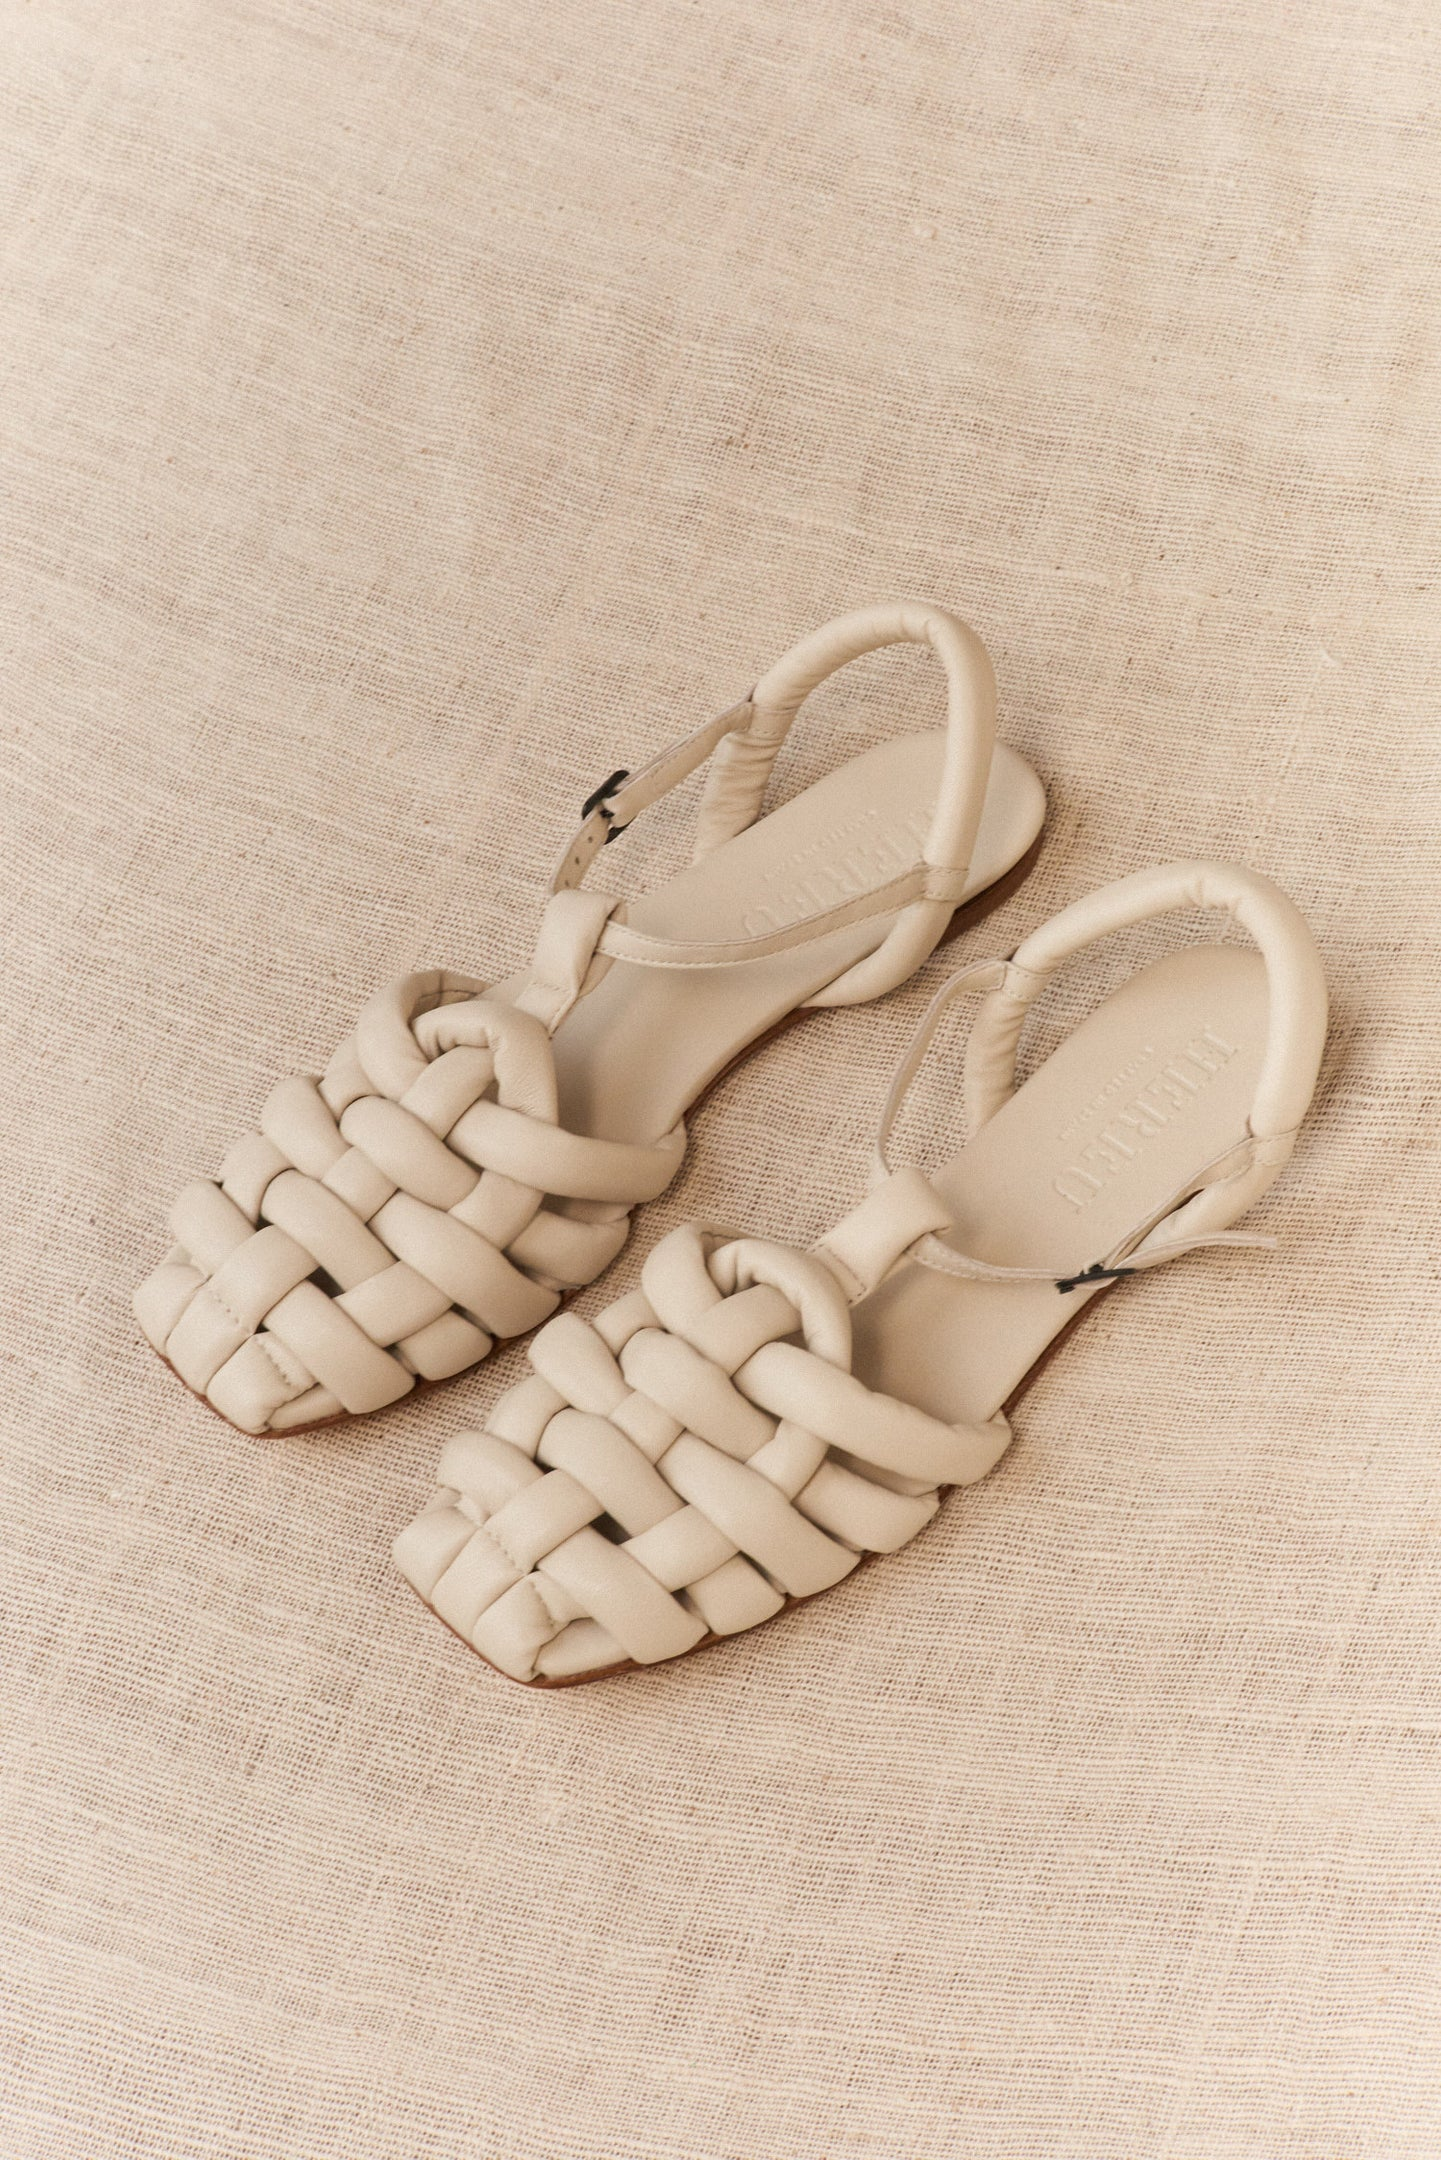 Hereu, Cabersa Padded Fisherman Sandal Cream